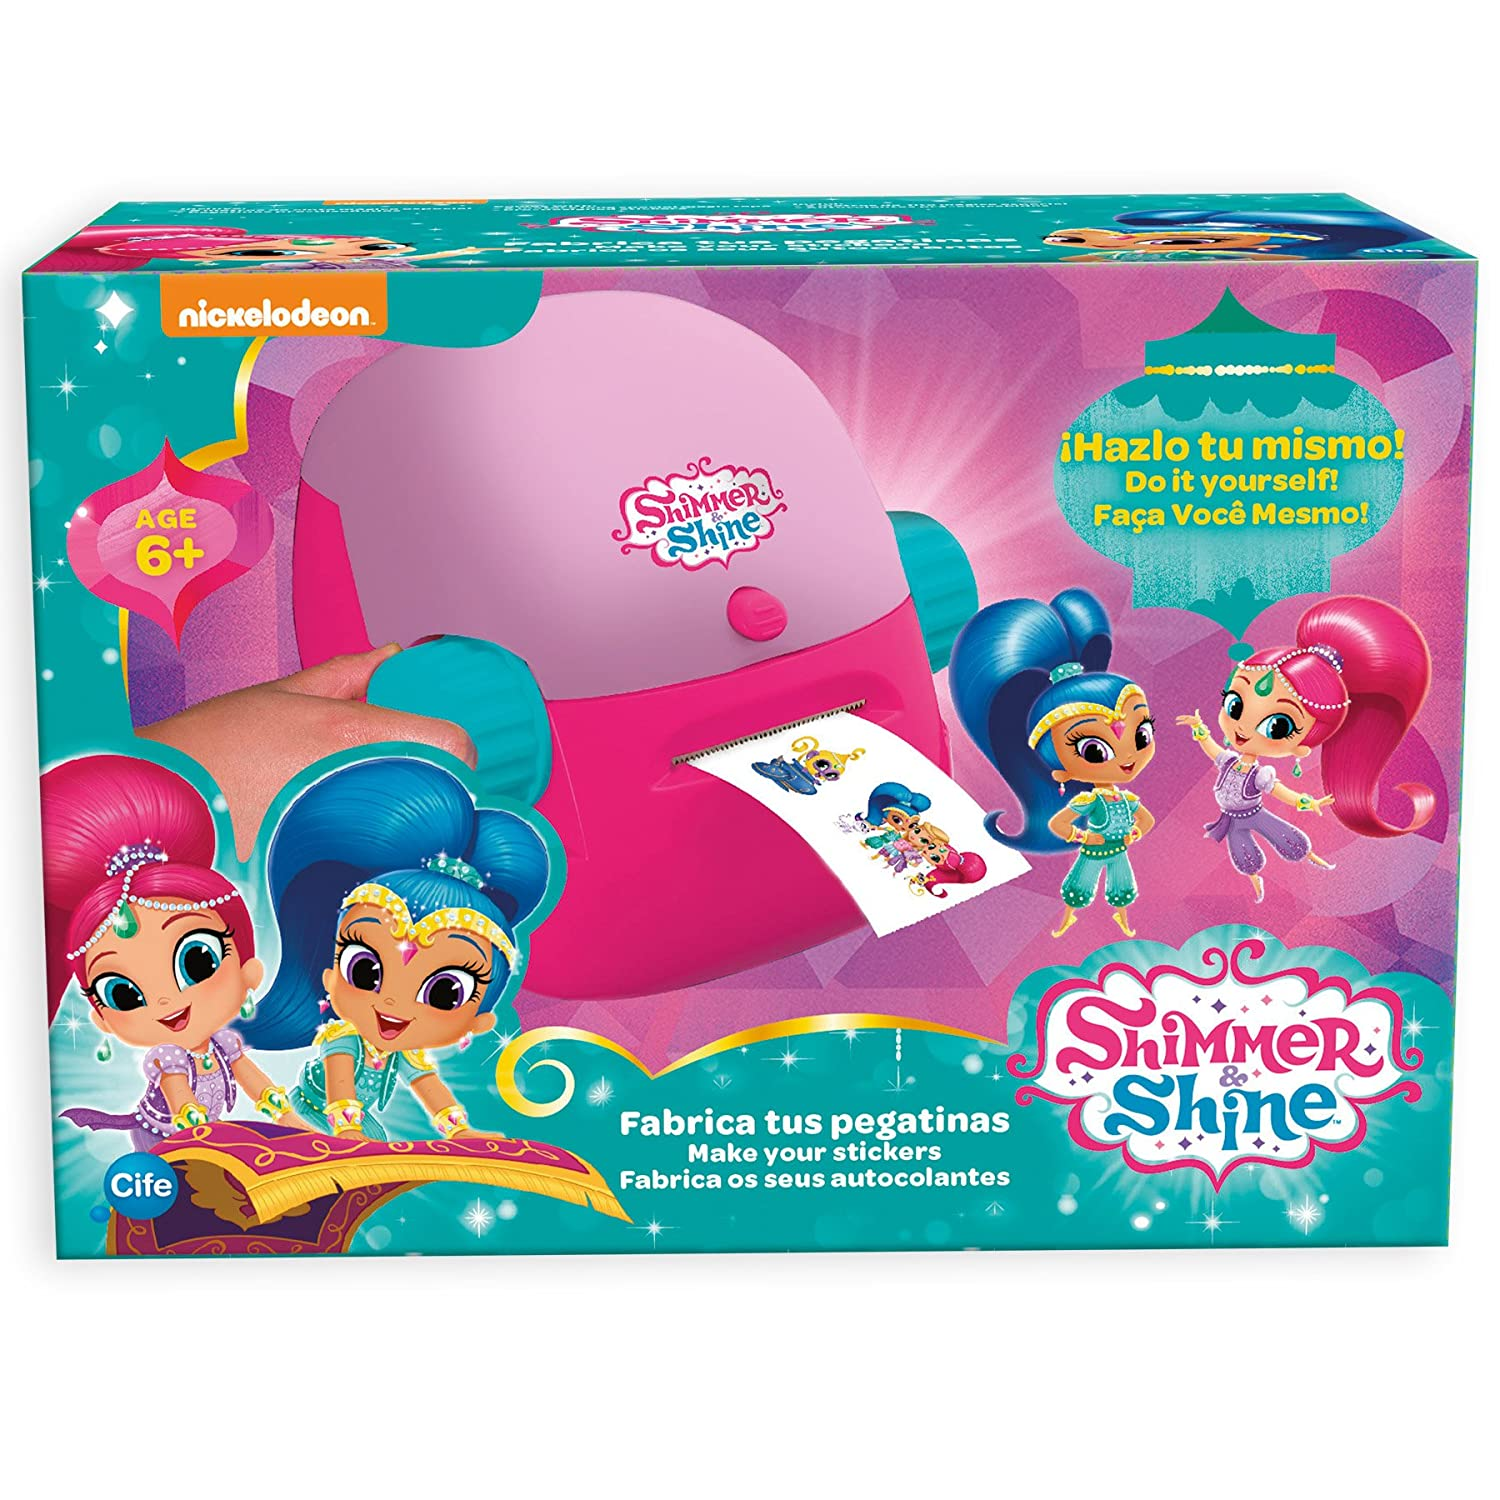 Shimmer and Shine Fabrica tus pegatinas Cife Spain